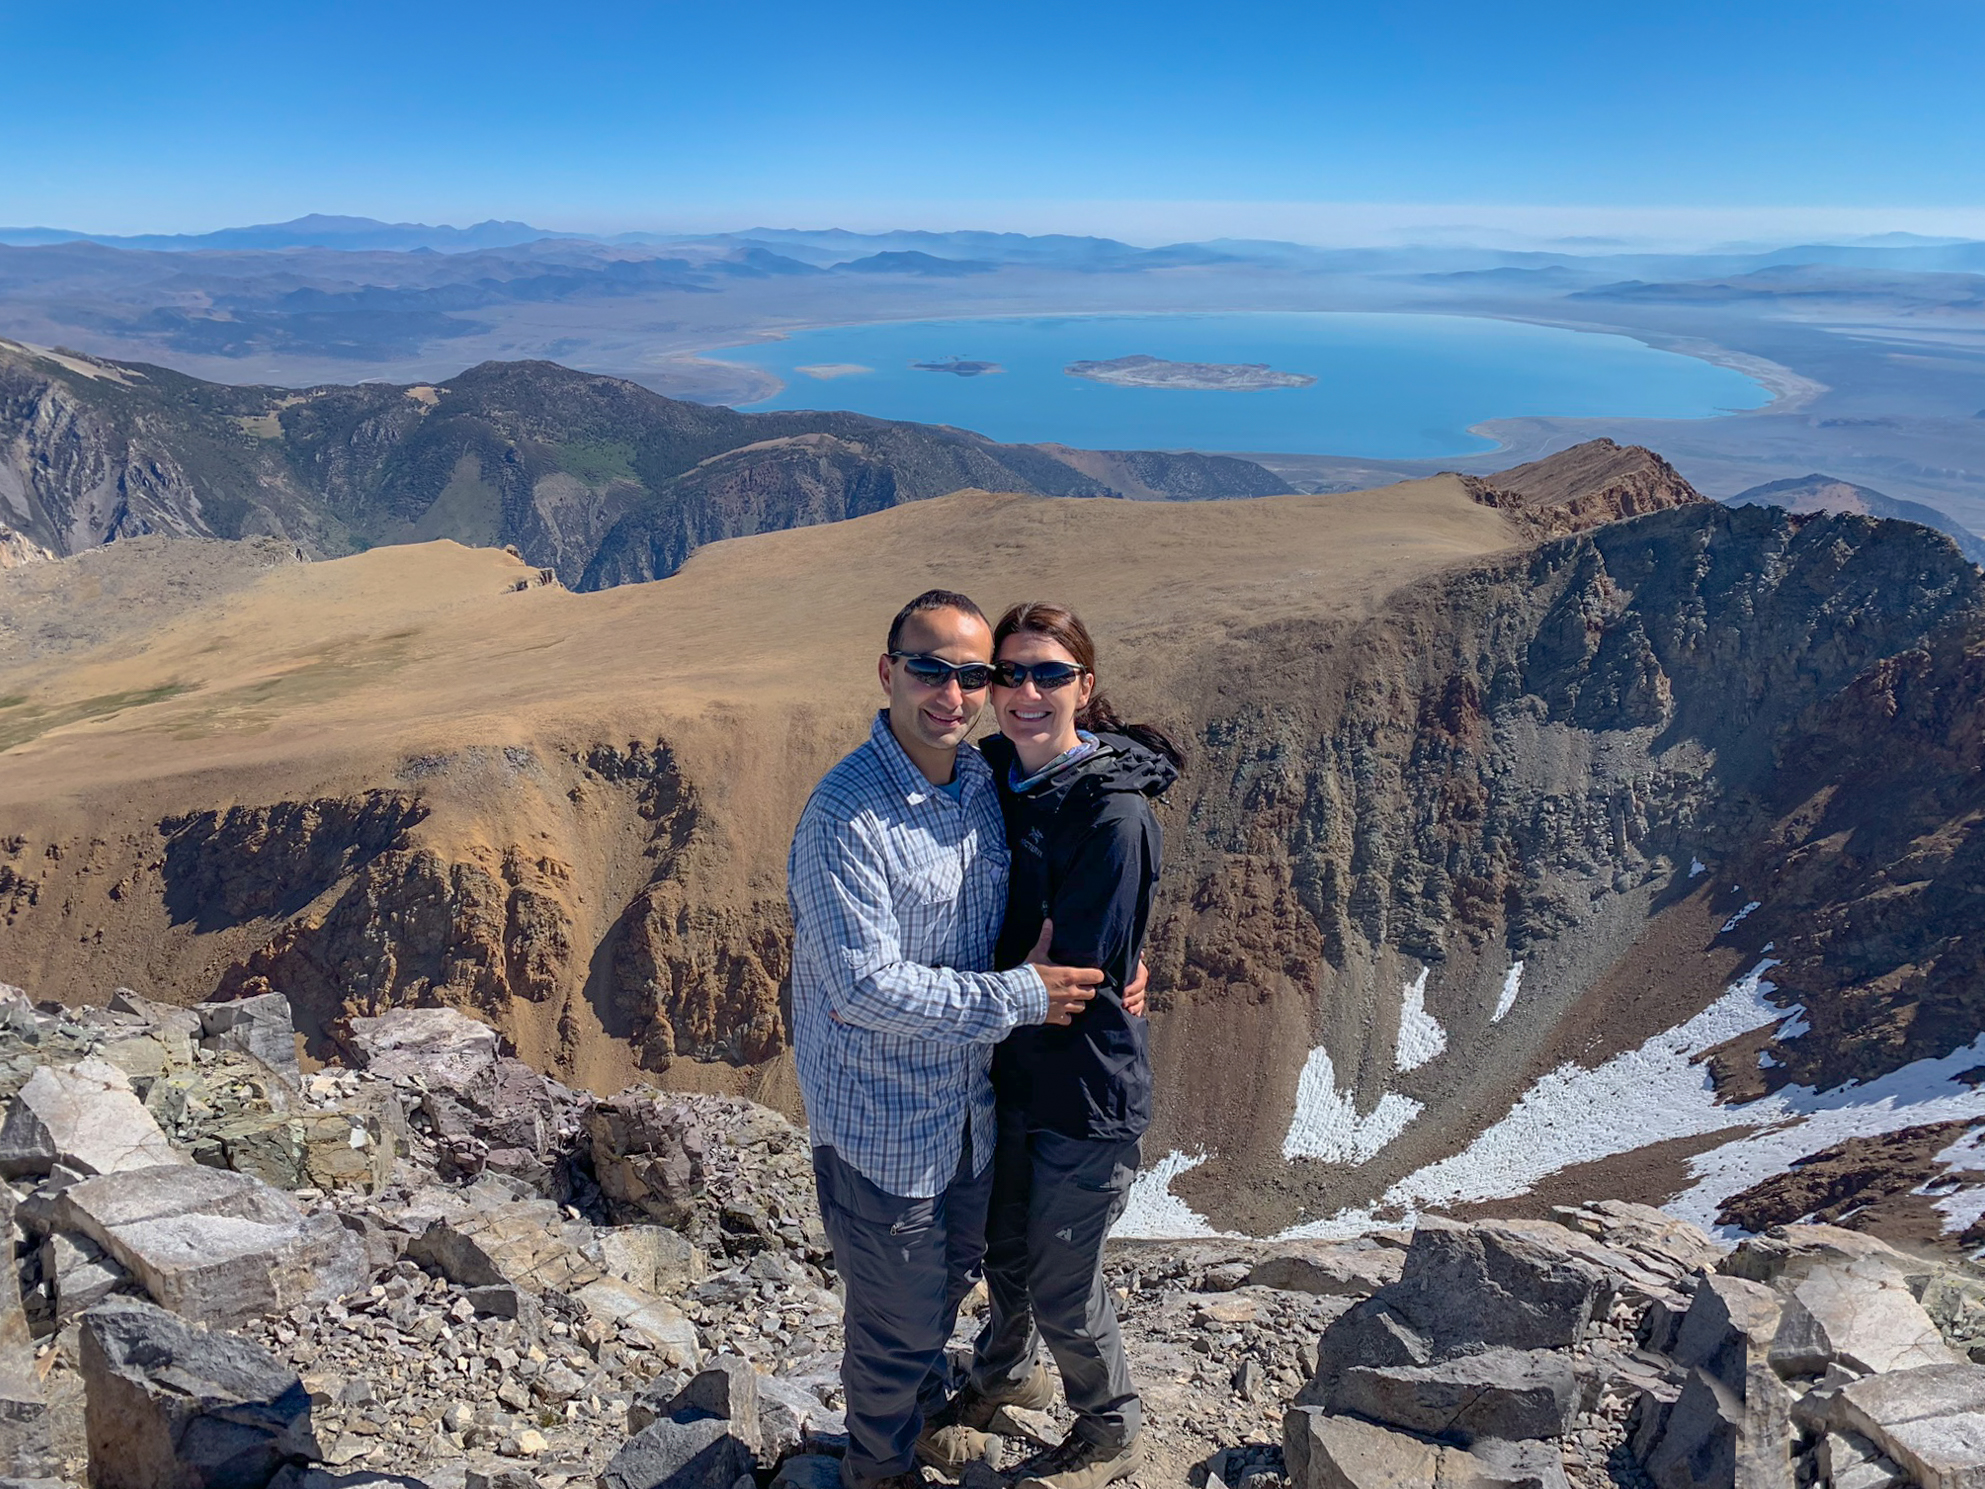 The summit of Mount Dana and Mono Lake in the background // Image credit: a hiker at the summit